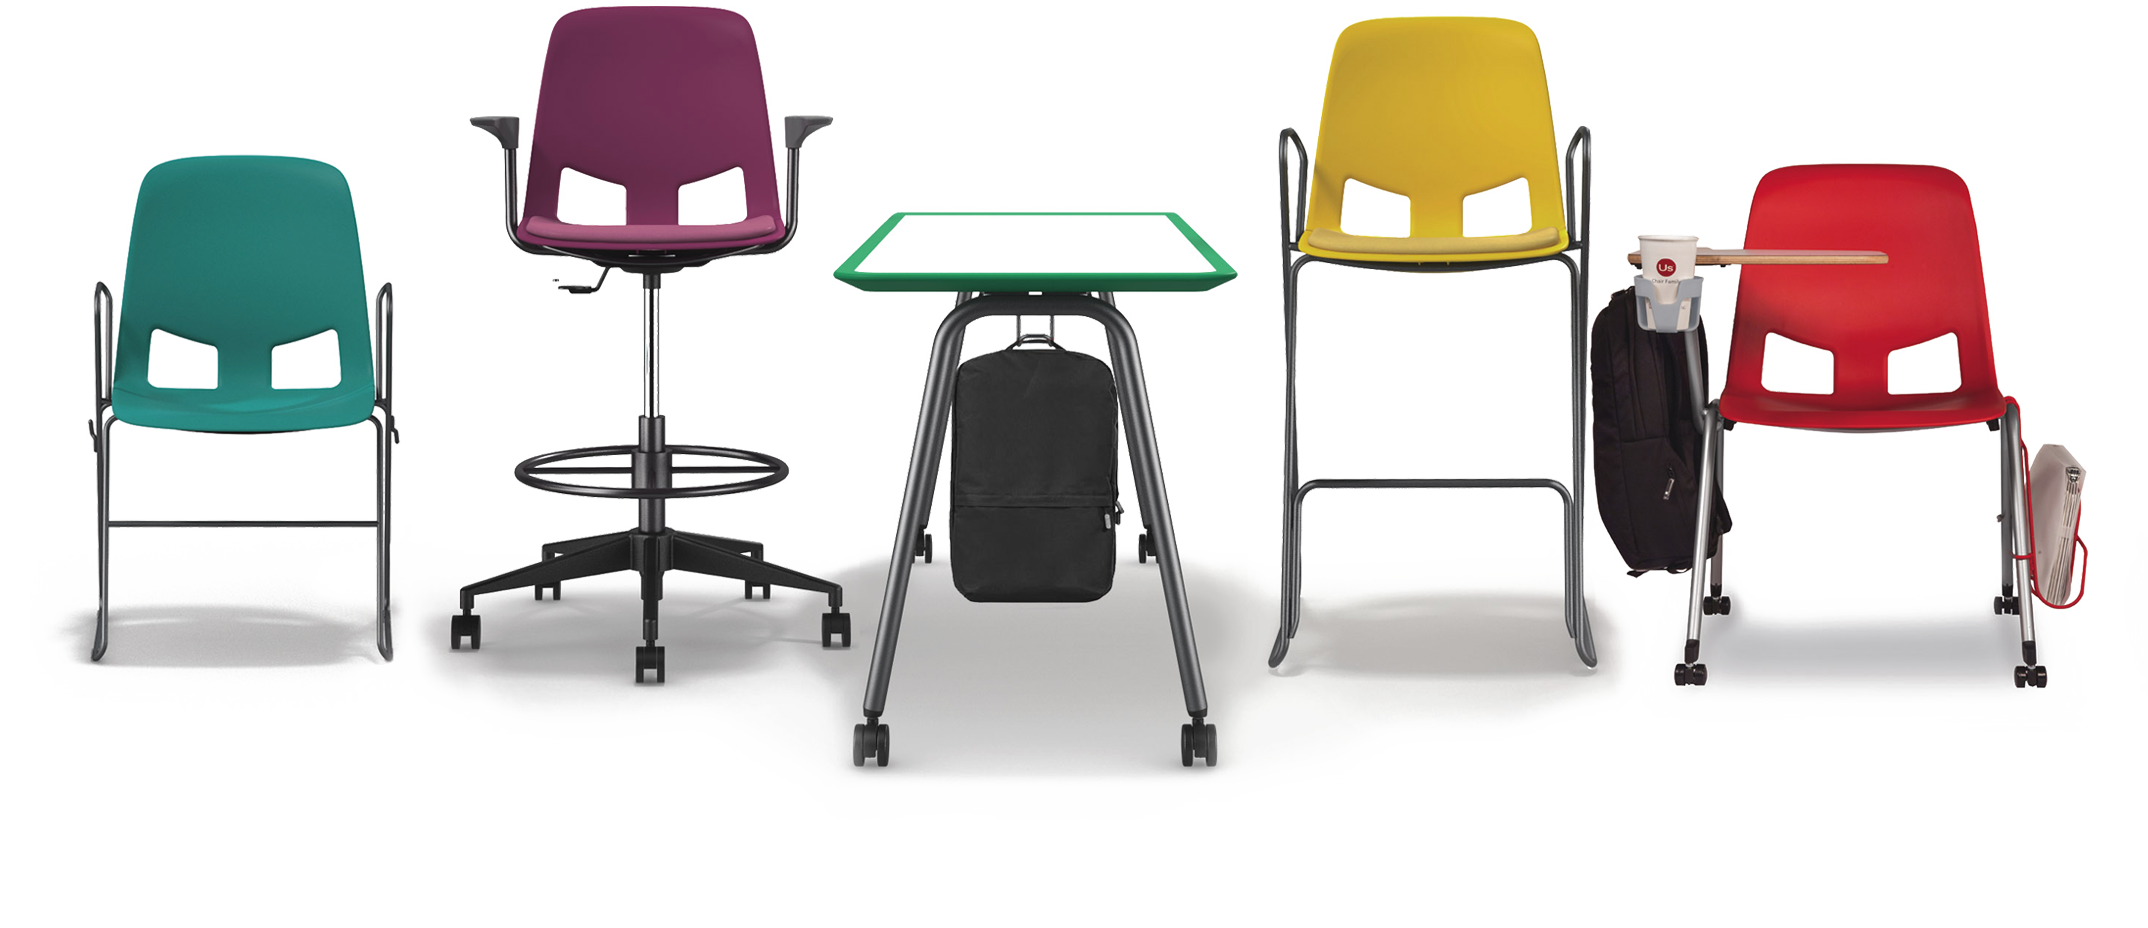 Desk clipart attached chair. The us family a